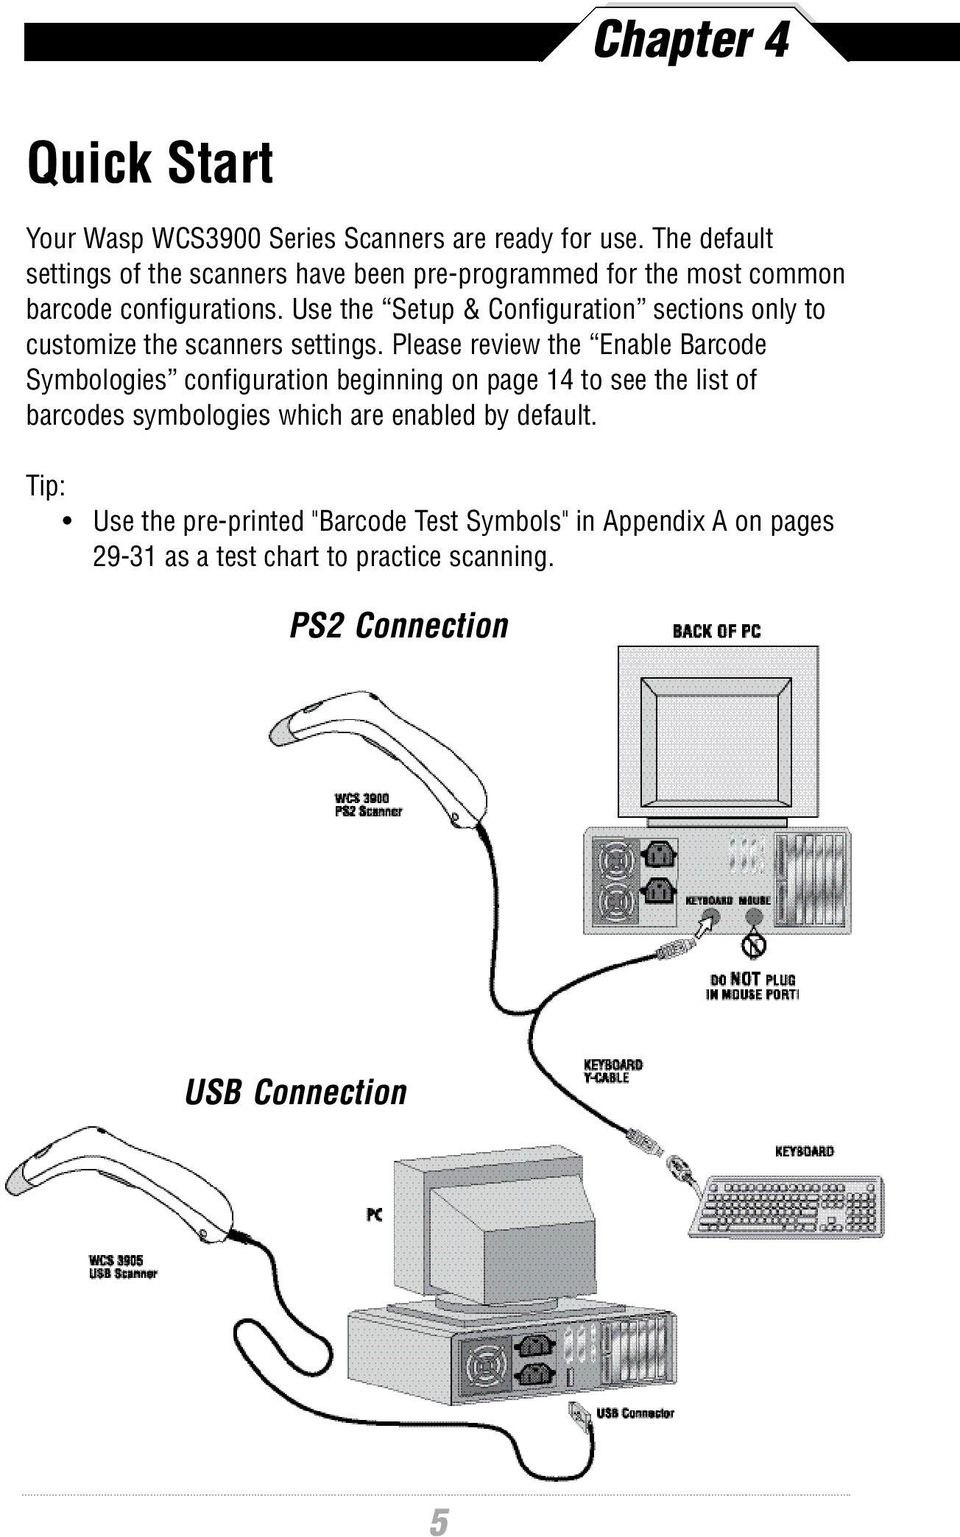 Barcode Scanning Made Easy Programming Guide Pdf Keyboard Ps 2 Connector Wiring Diagram Ps2 Connection Usb 5 Use The Setup Configuration Sections Only To Customize Scanners Settings